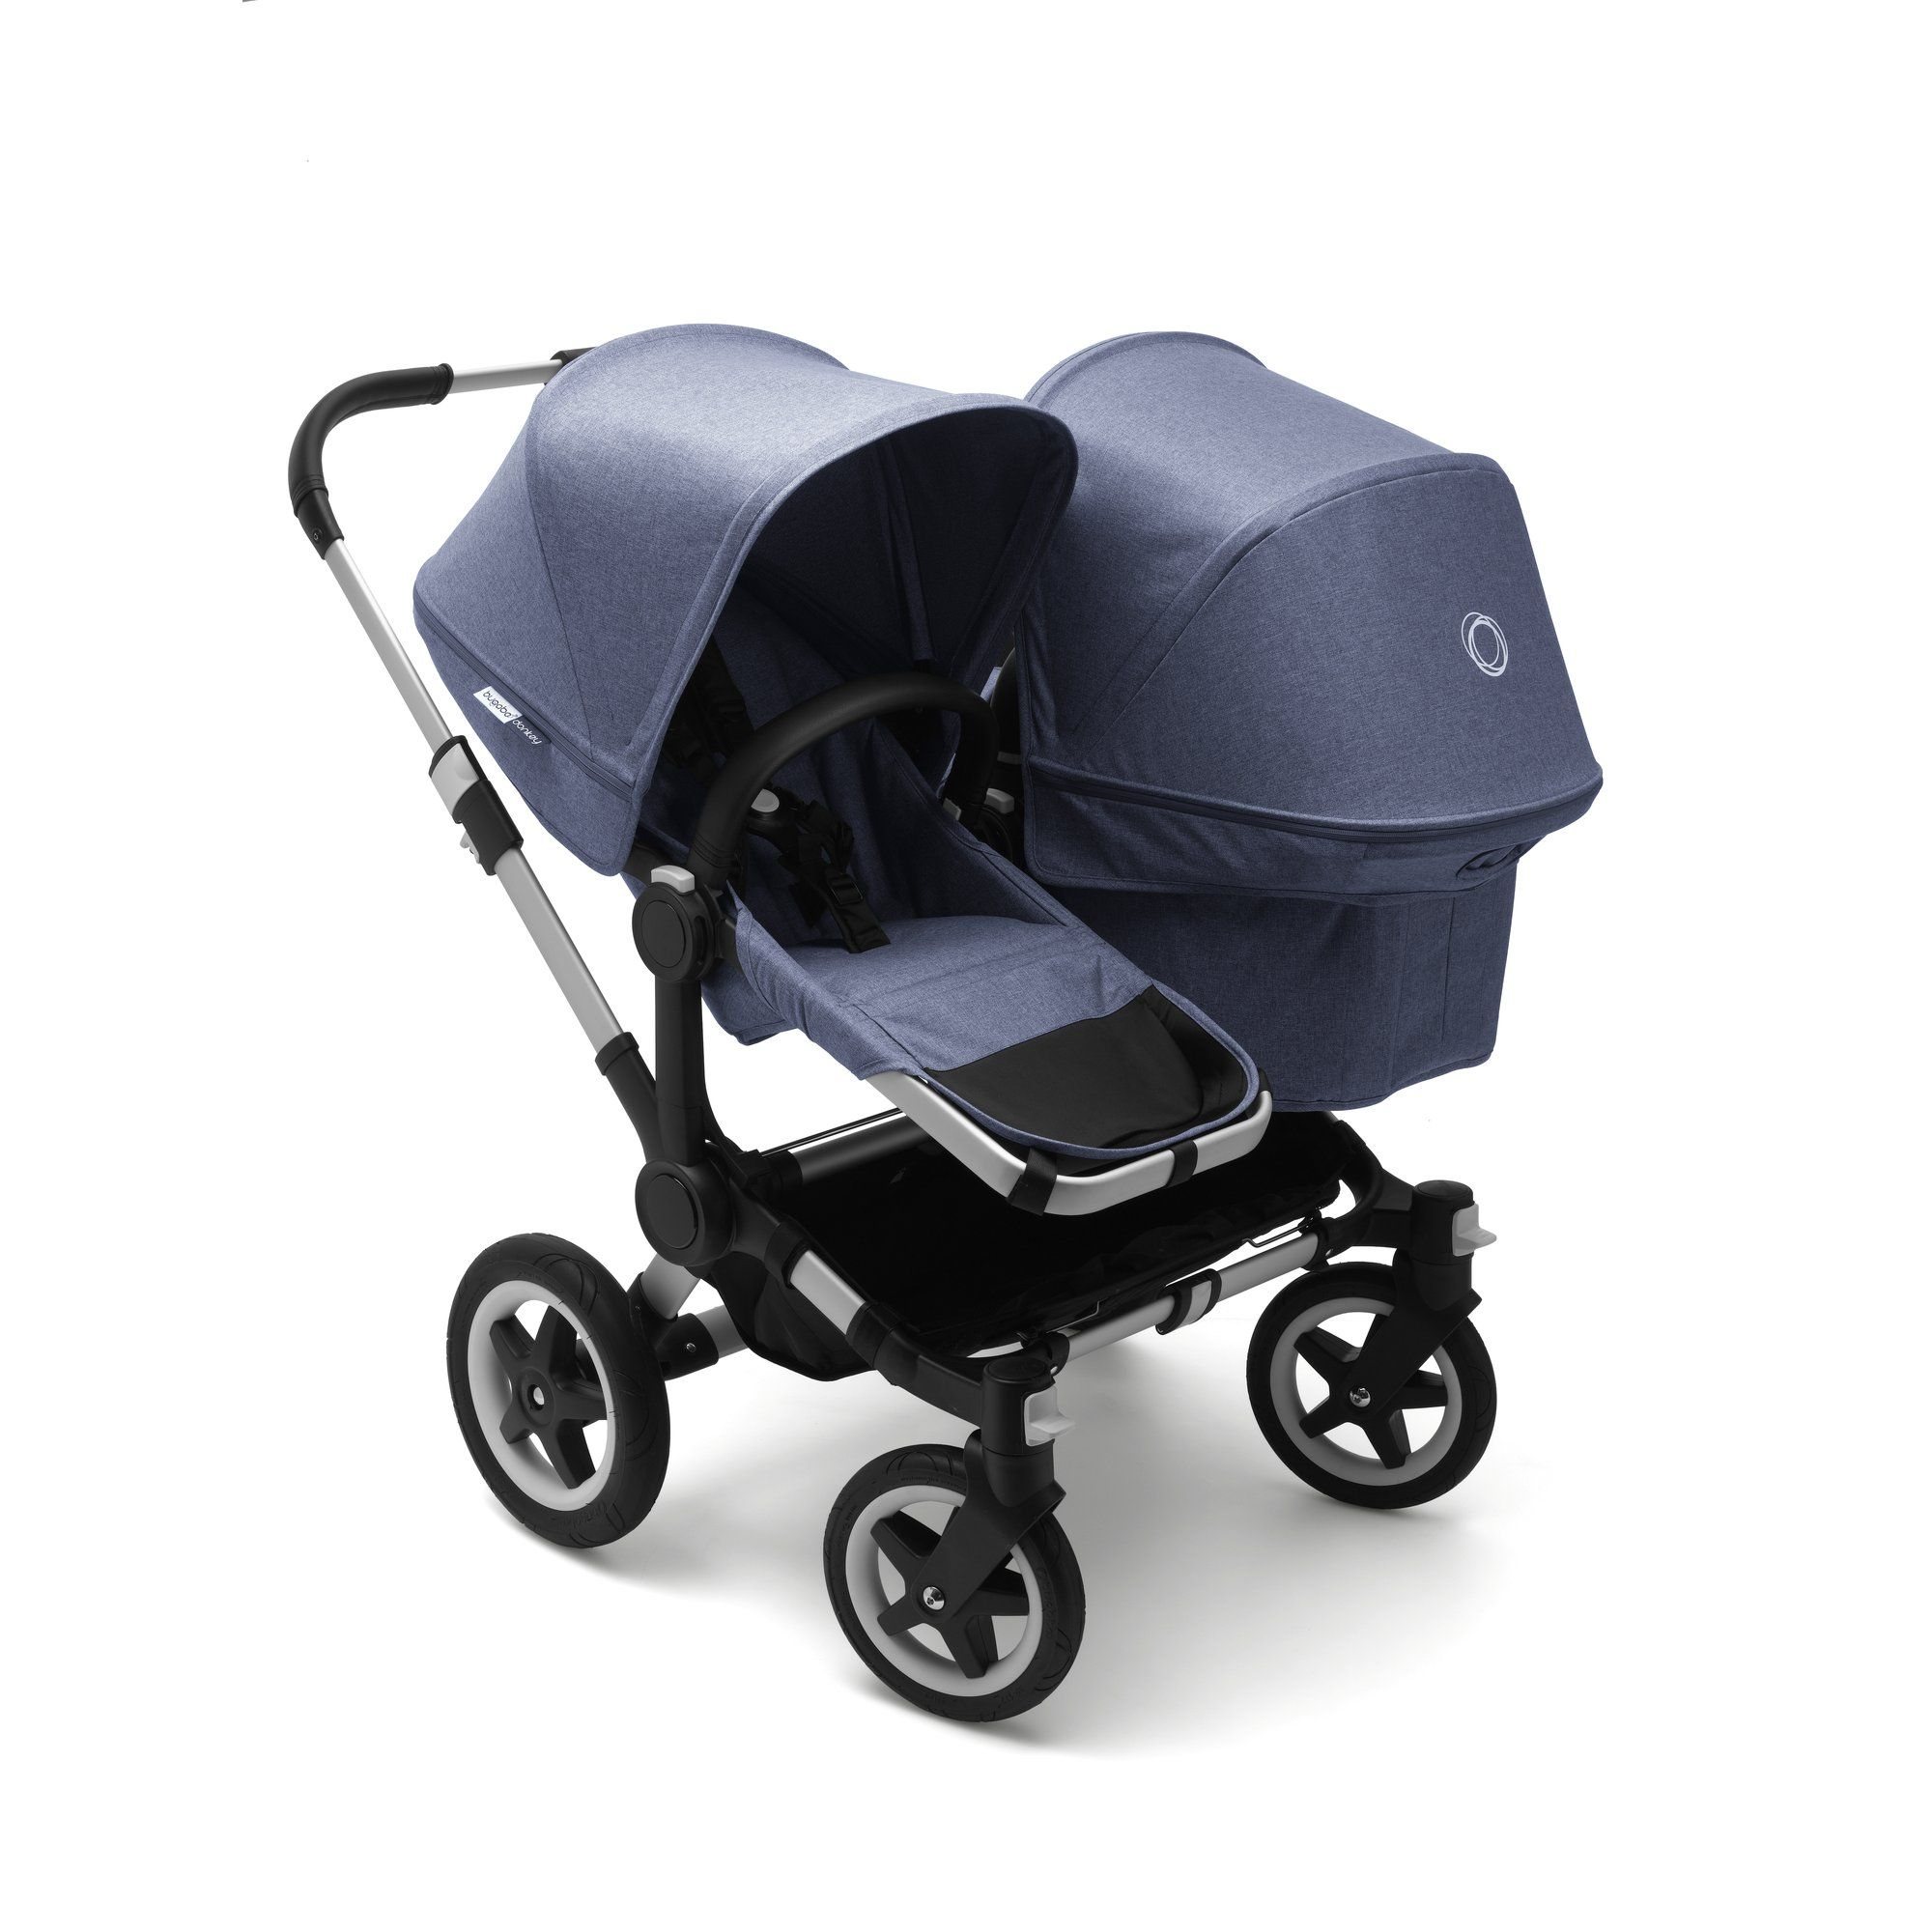 Free shipping and no sales tax on the Bugaboo Donkey2 duo